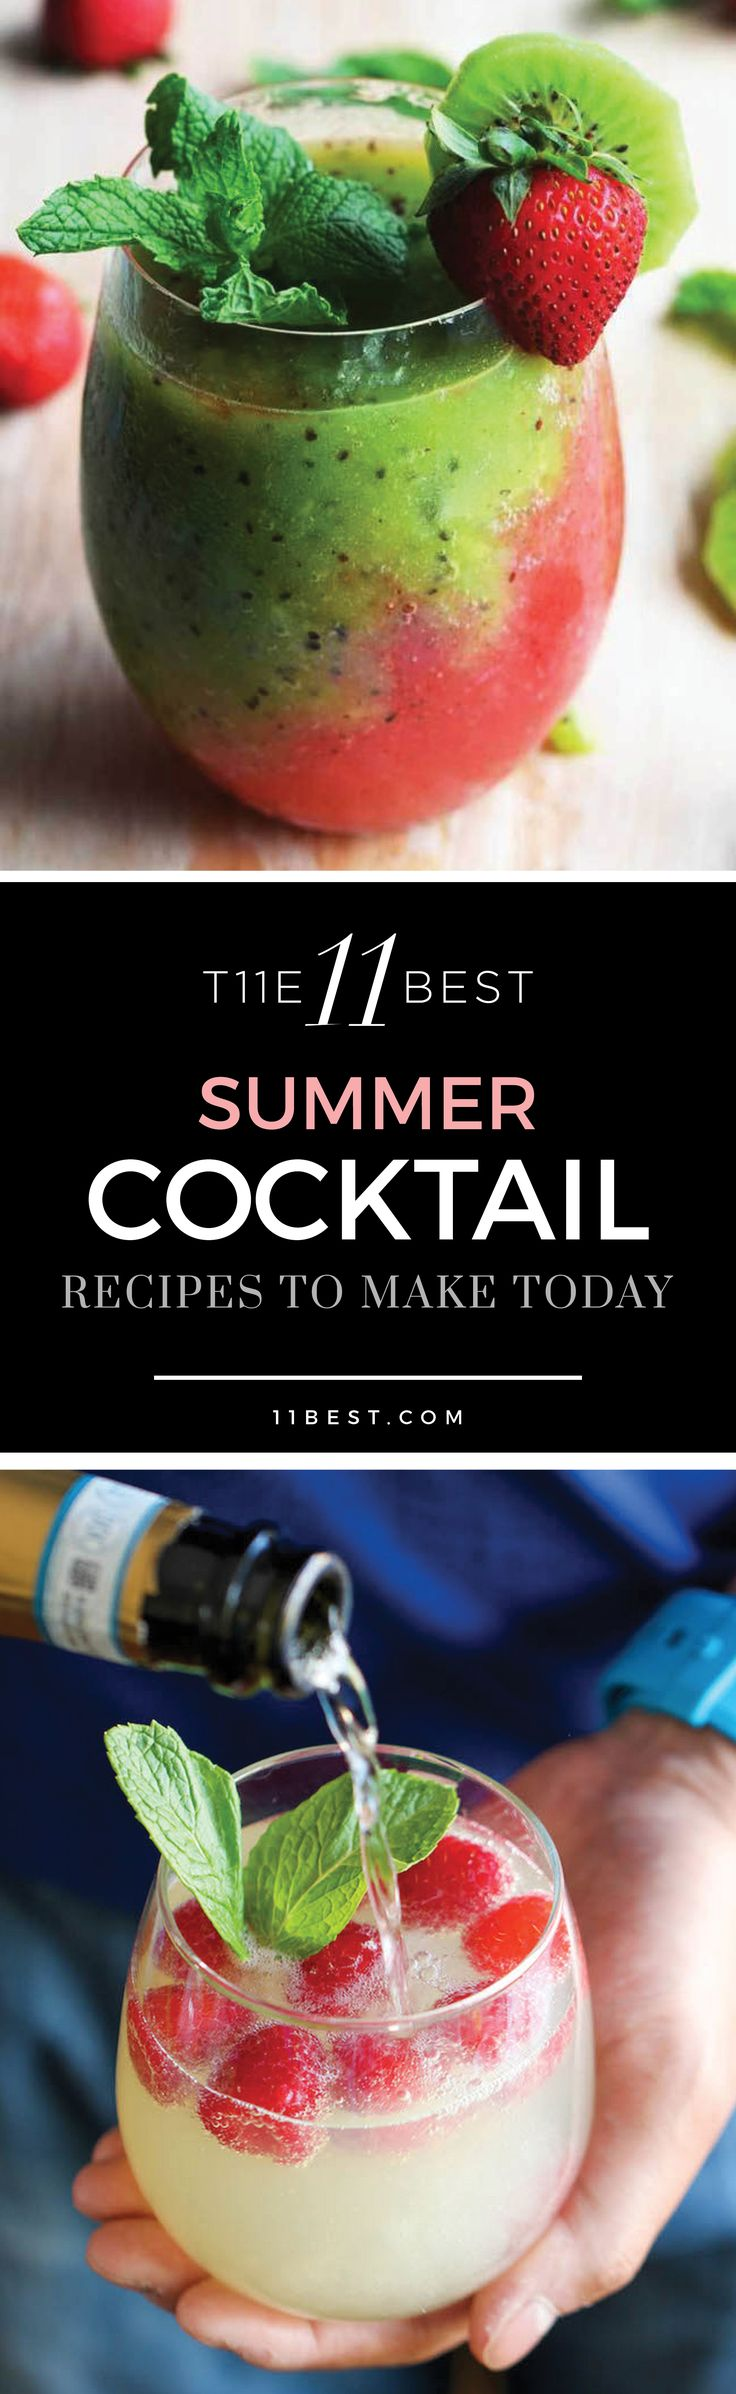 The 11 Best Summer Cocktails! I want to try them all!!